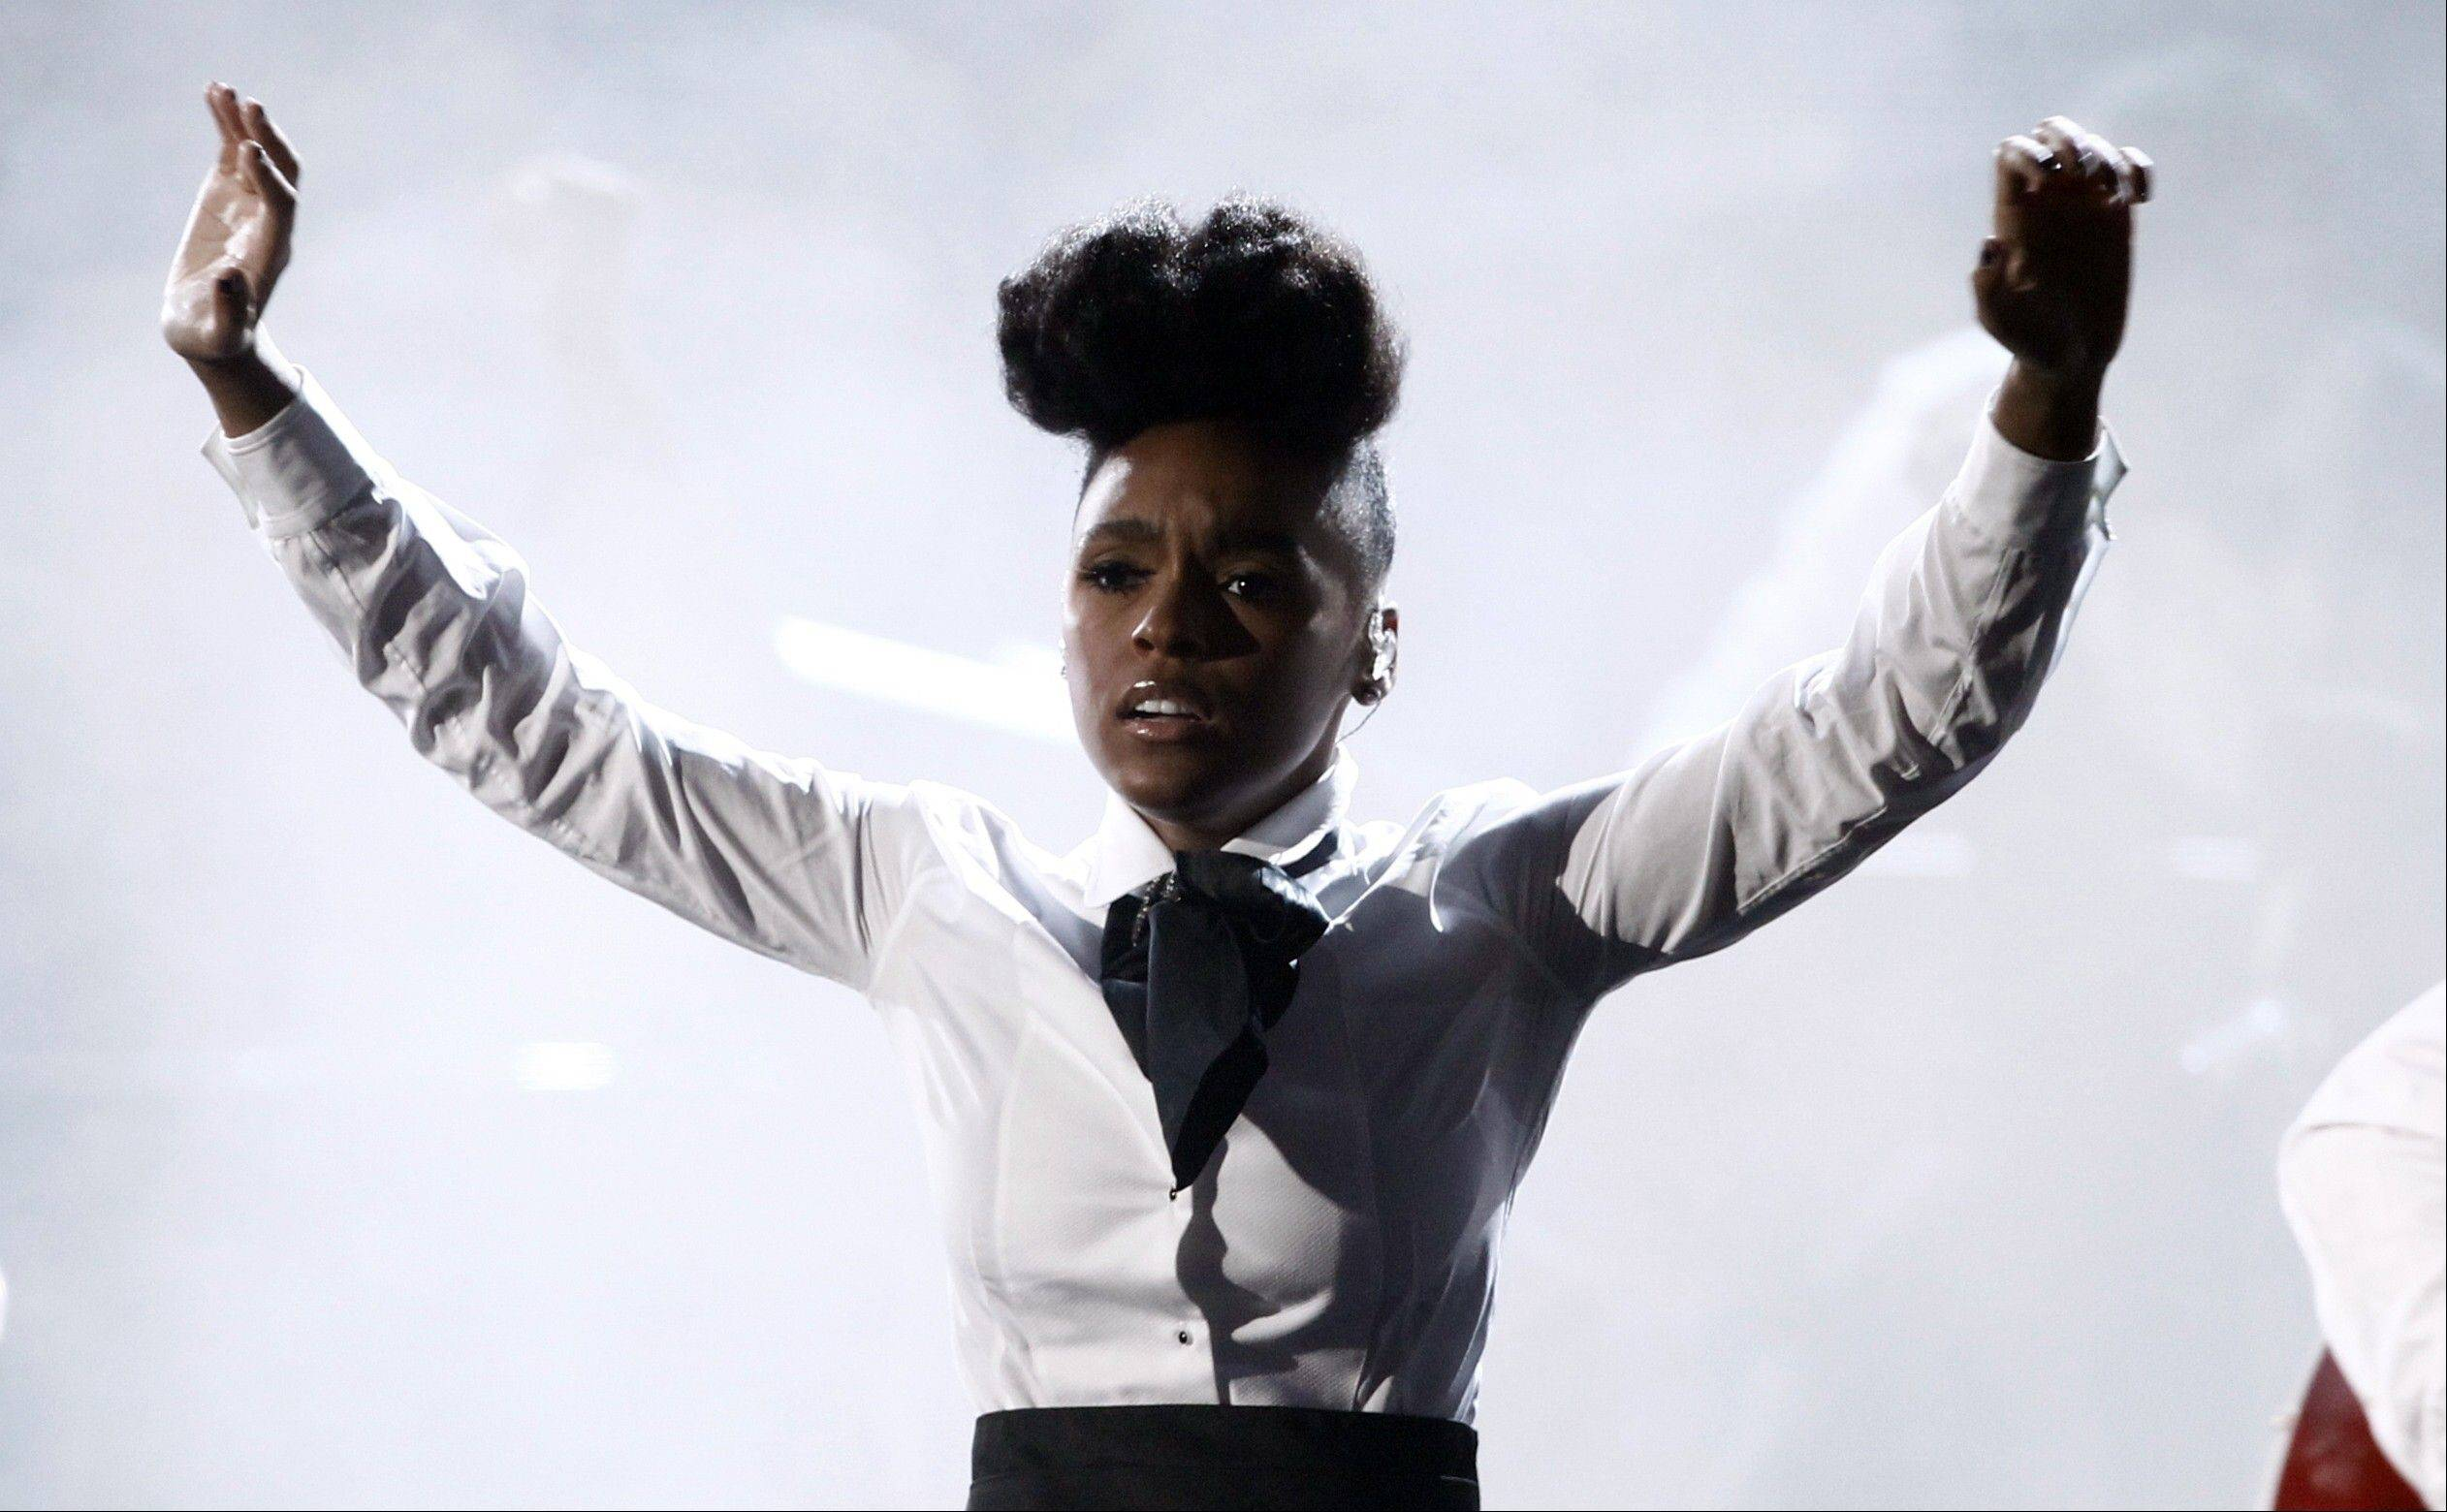 Janelle Monae says she's an avid thrift shopper, namedropping stores like Little Five Points, Ragarama and Poor Little Rich Girl as her favorites in her Atlanta hometown.